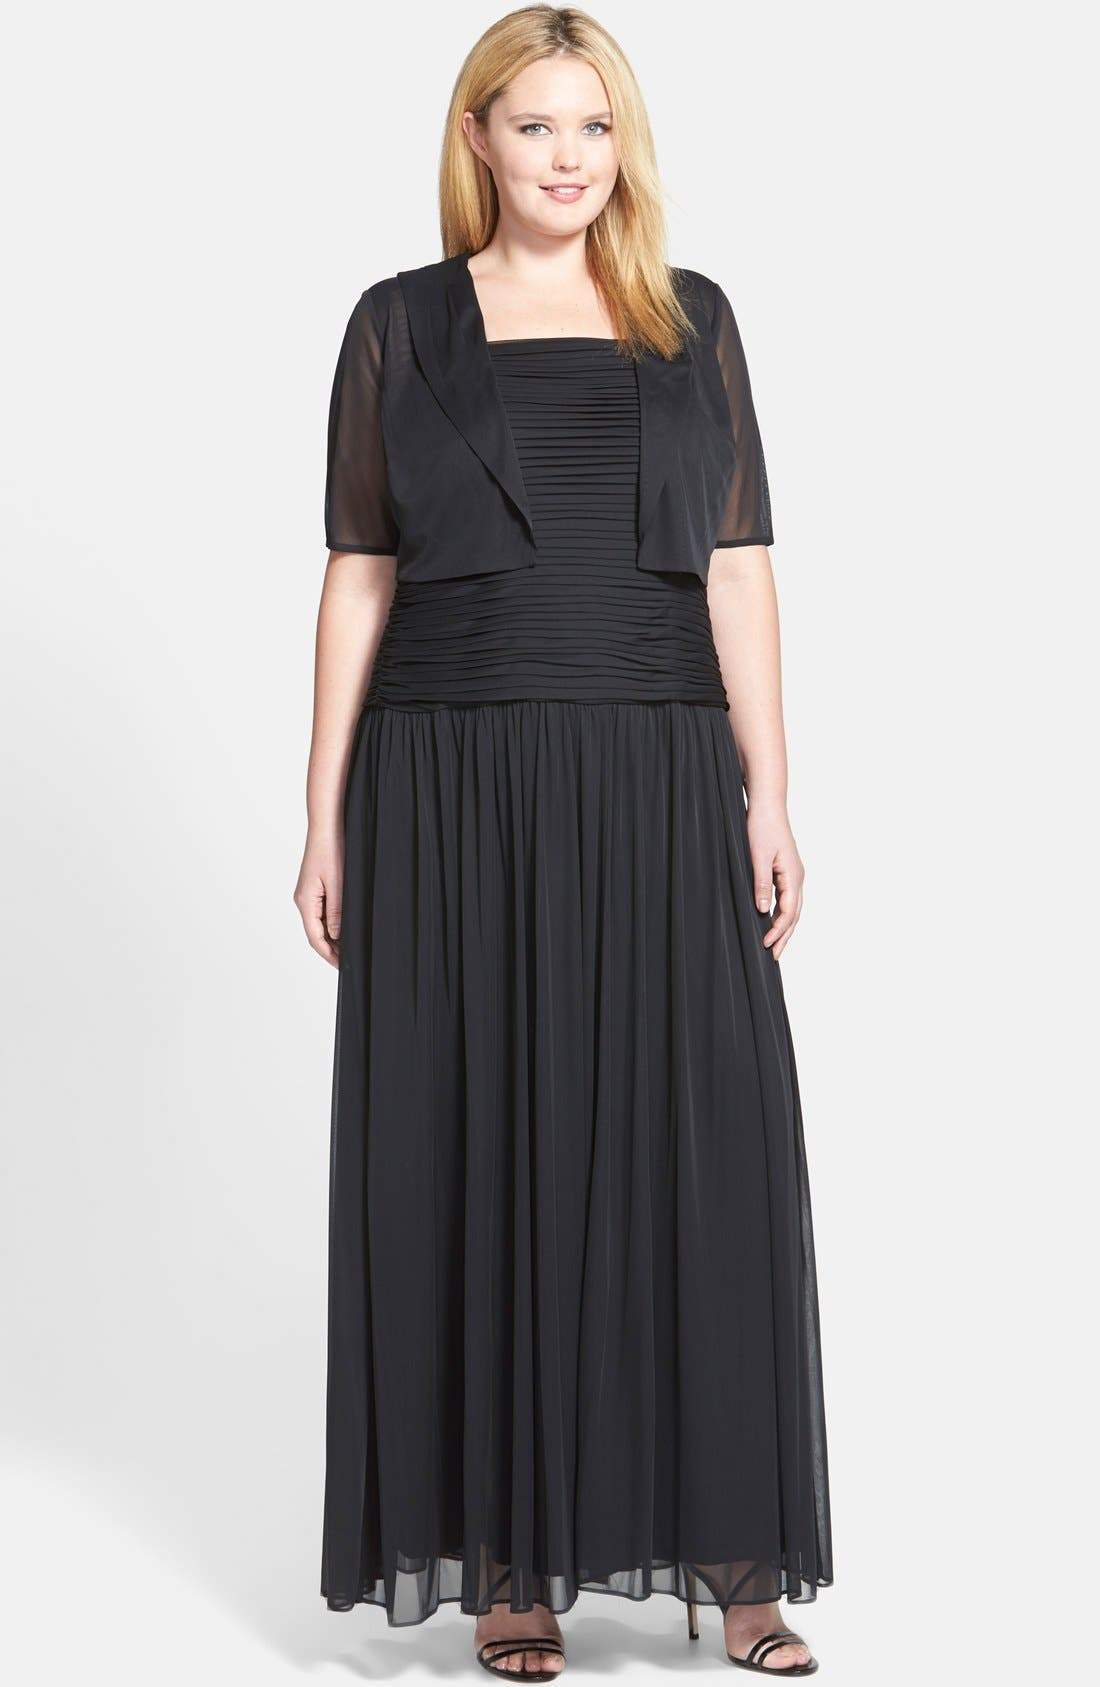 Alternate Image 1 Selected - Adrianna Papell Pleat Bodice Tulle Gown & Shrug (Plus Size)